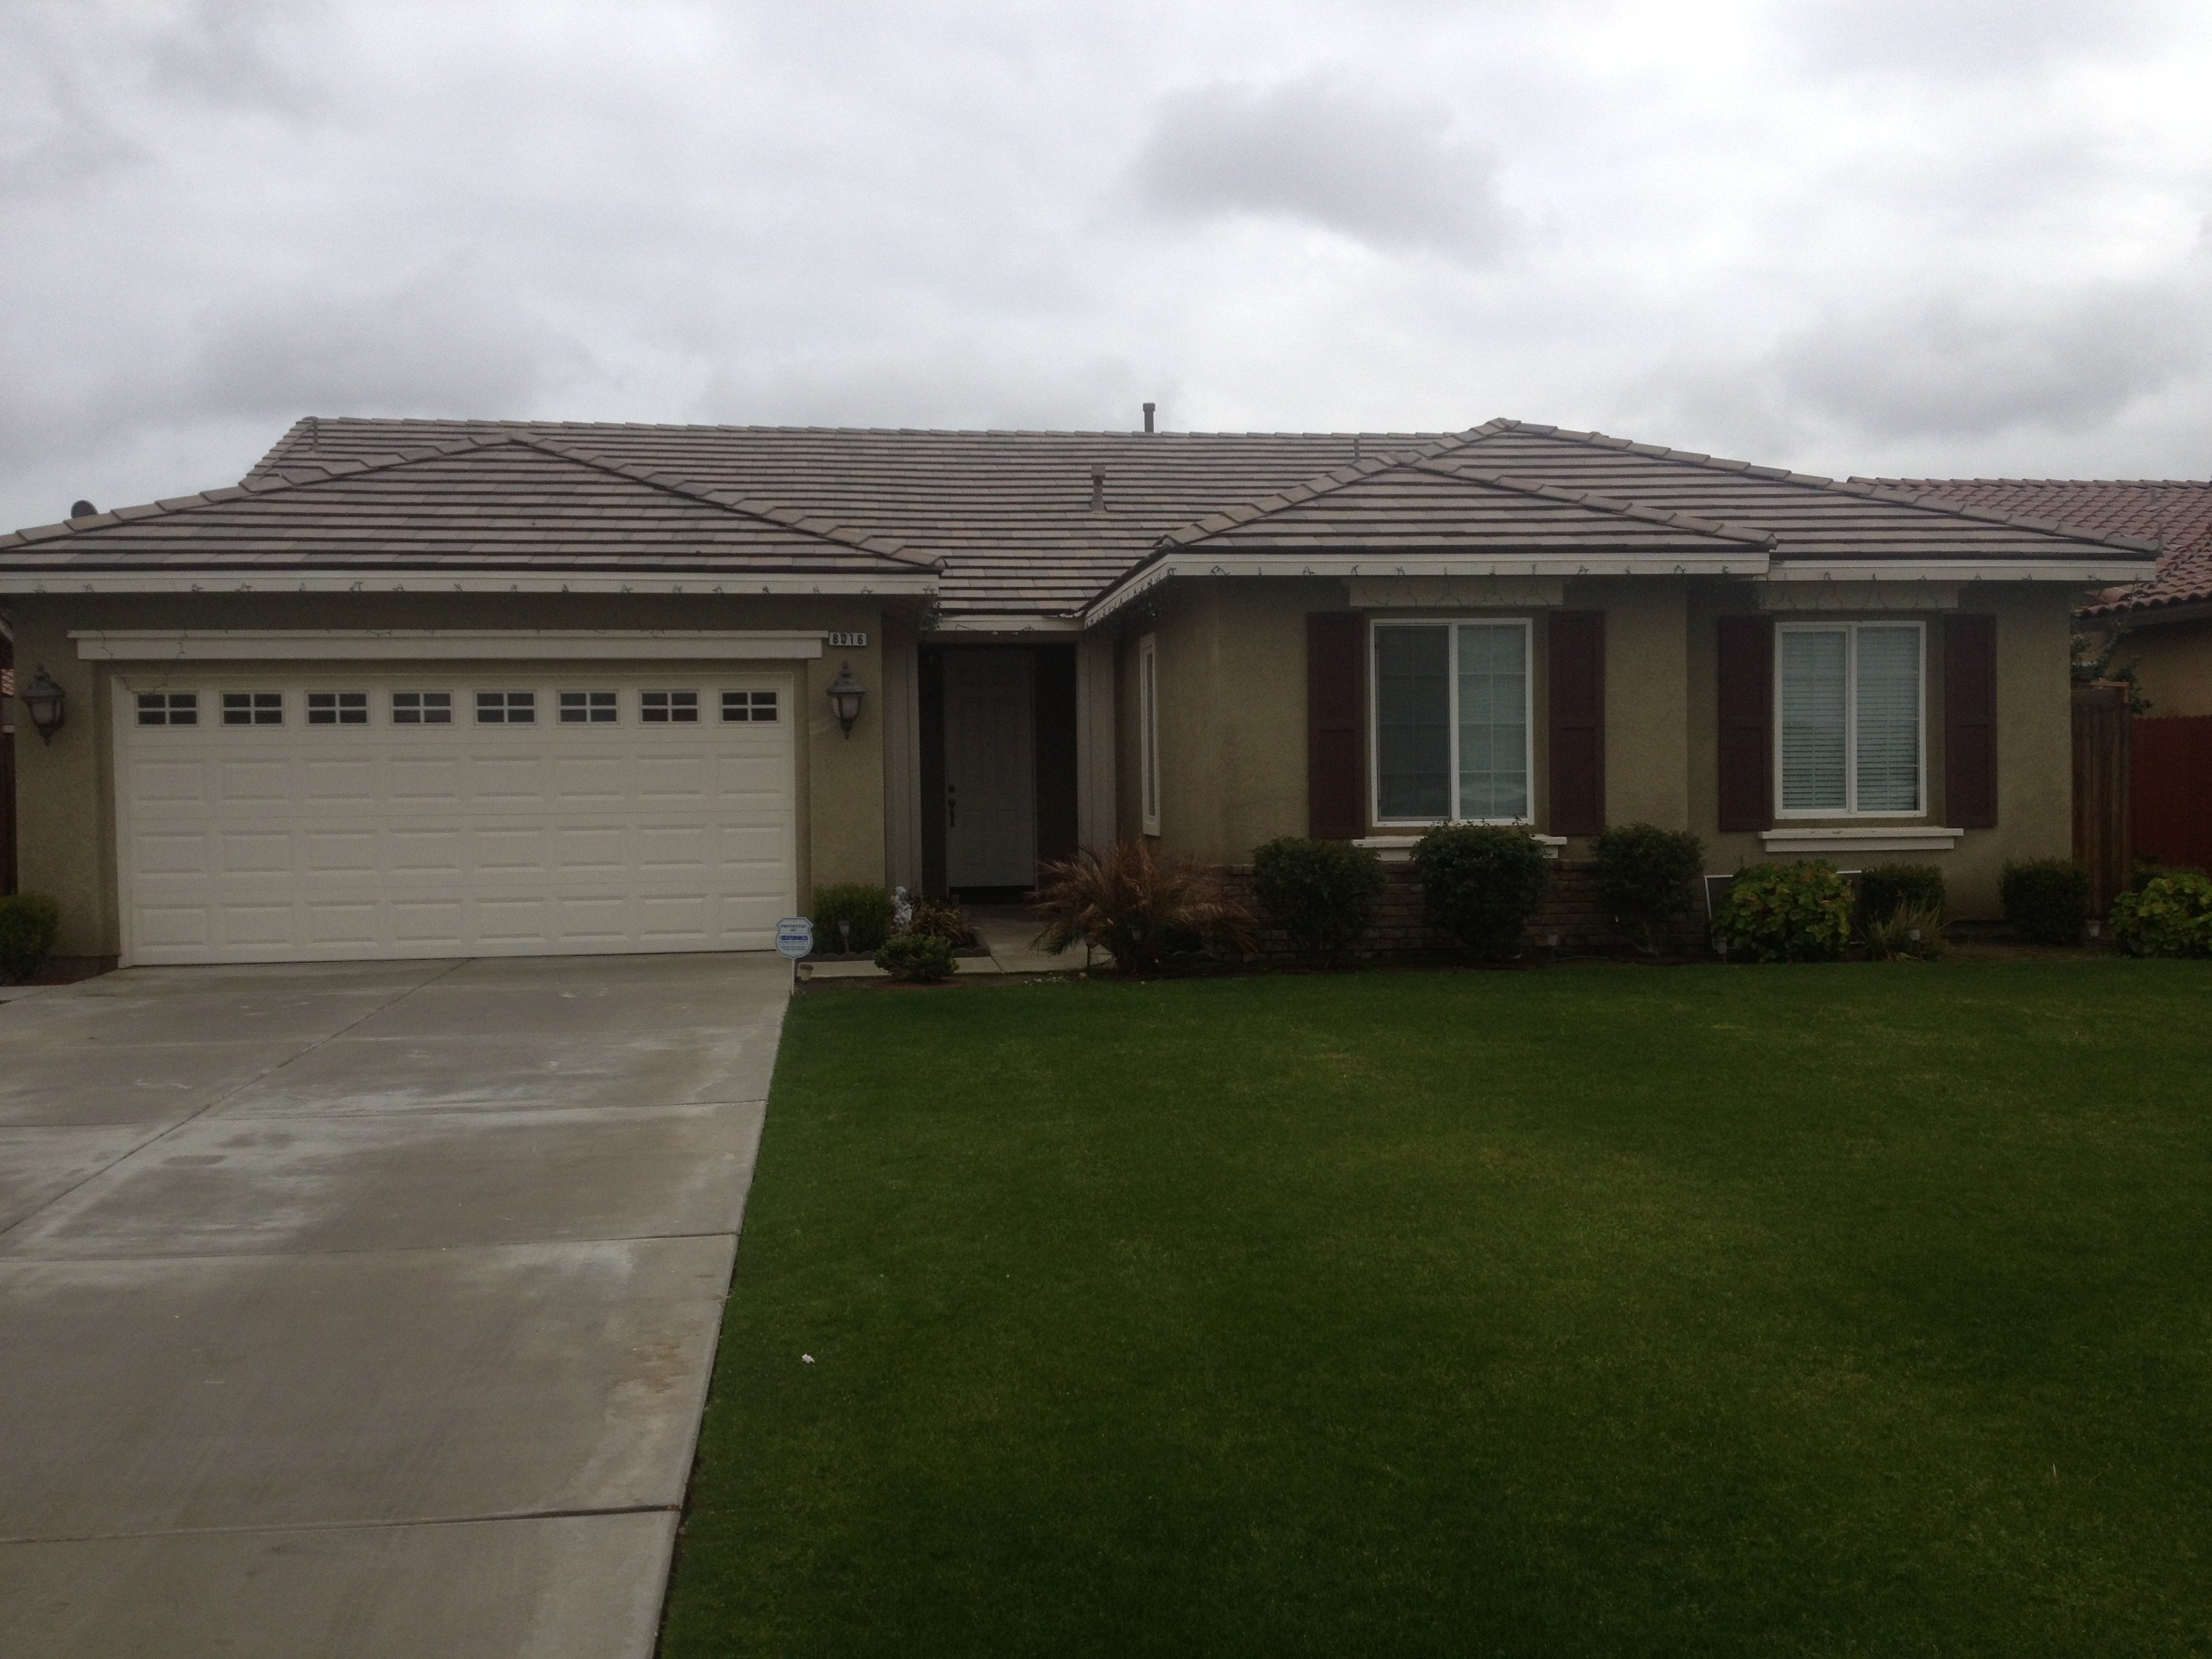 Best 1495 8016 Boggs Ct Bakersfield Ca 93313 Southwest With Pictures